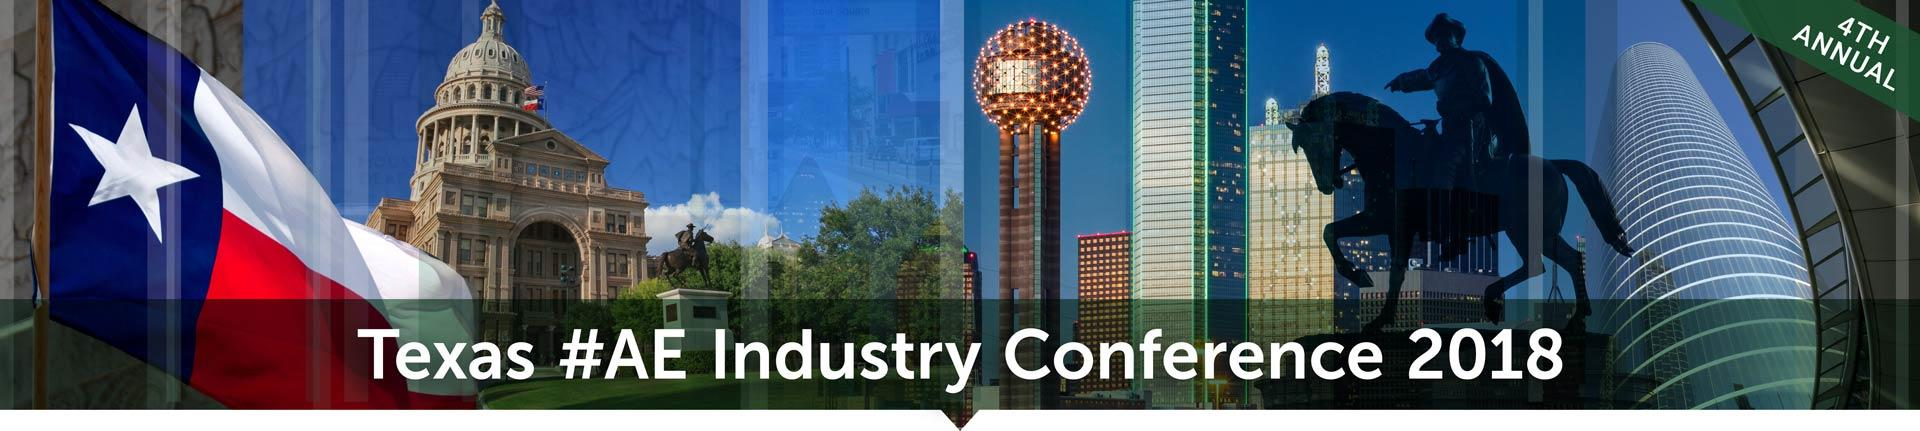 Texas #AE Industry Conference 2018